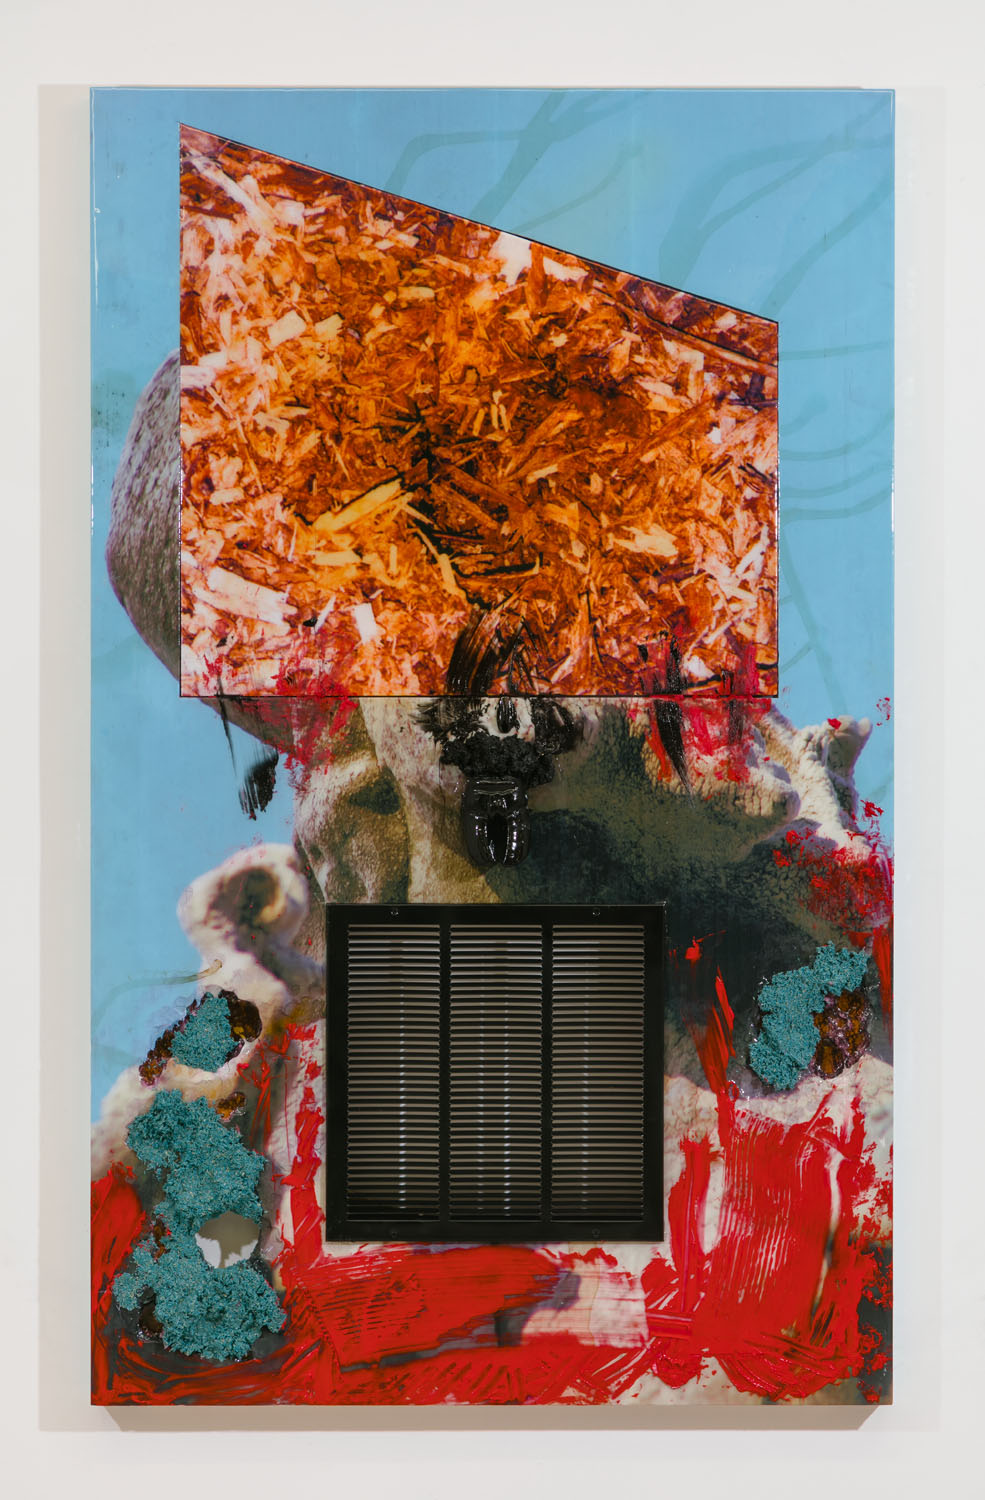 Borden Capalino   Eric the Trojan (Tarantula) , 2018  UV print, air vent, beef hoof, clothing hook, soil, grass sed, acrylic polymer, enamel, silicone, and resin on polystyrene, wood, and Sintra  77 x 47 x 5.25 inches